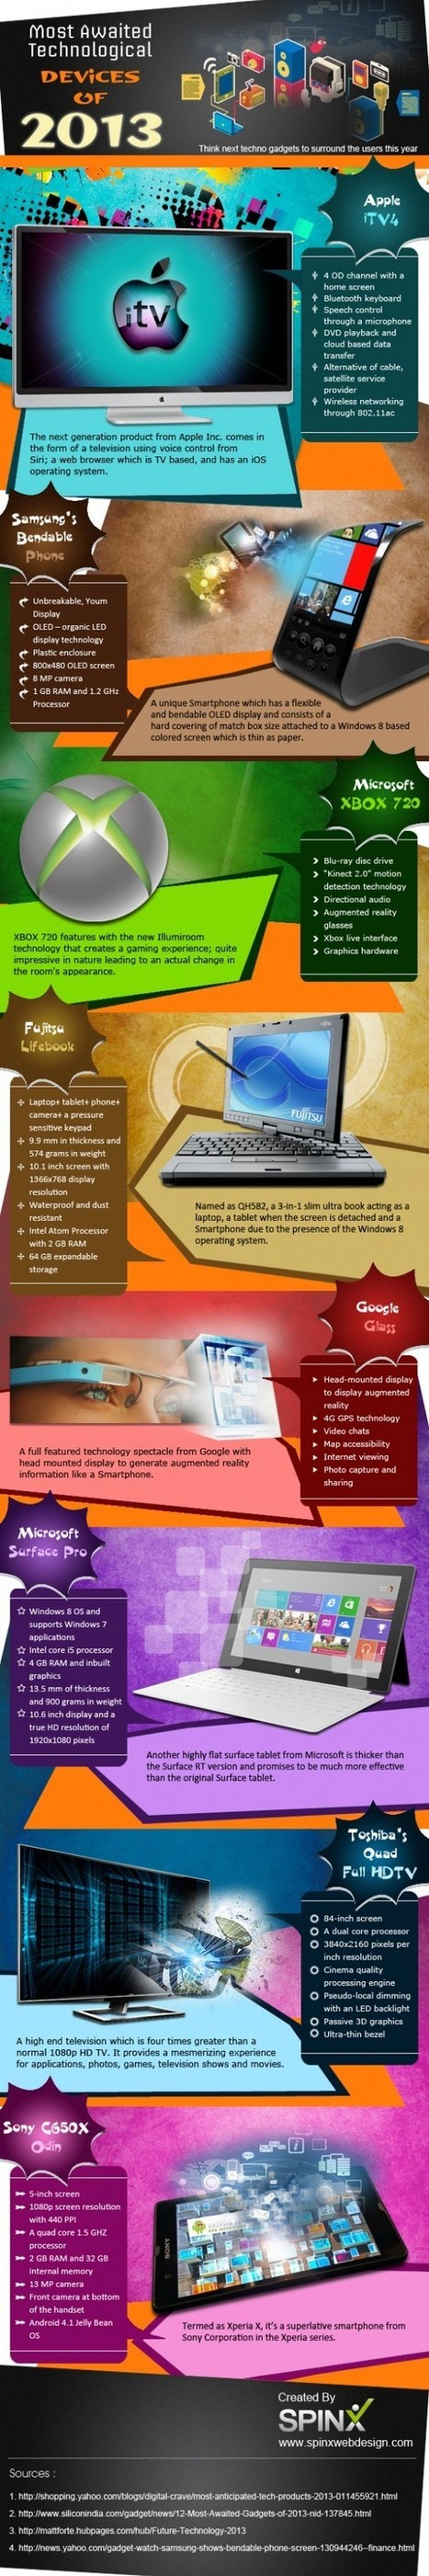 Eight Techno Gadgets We Expect In 2013 [Infographic] | Digital-News on Scoop.it today | Scoop.it